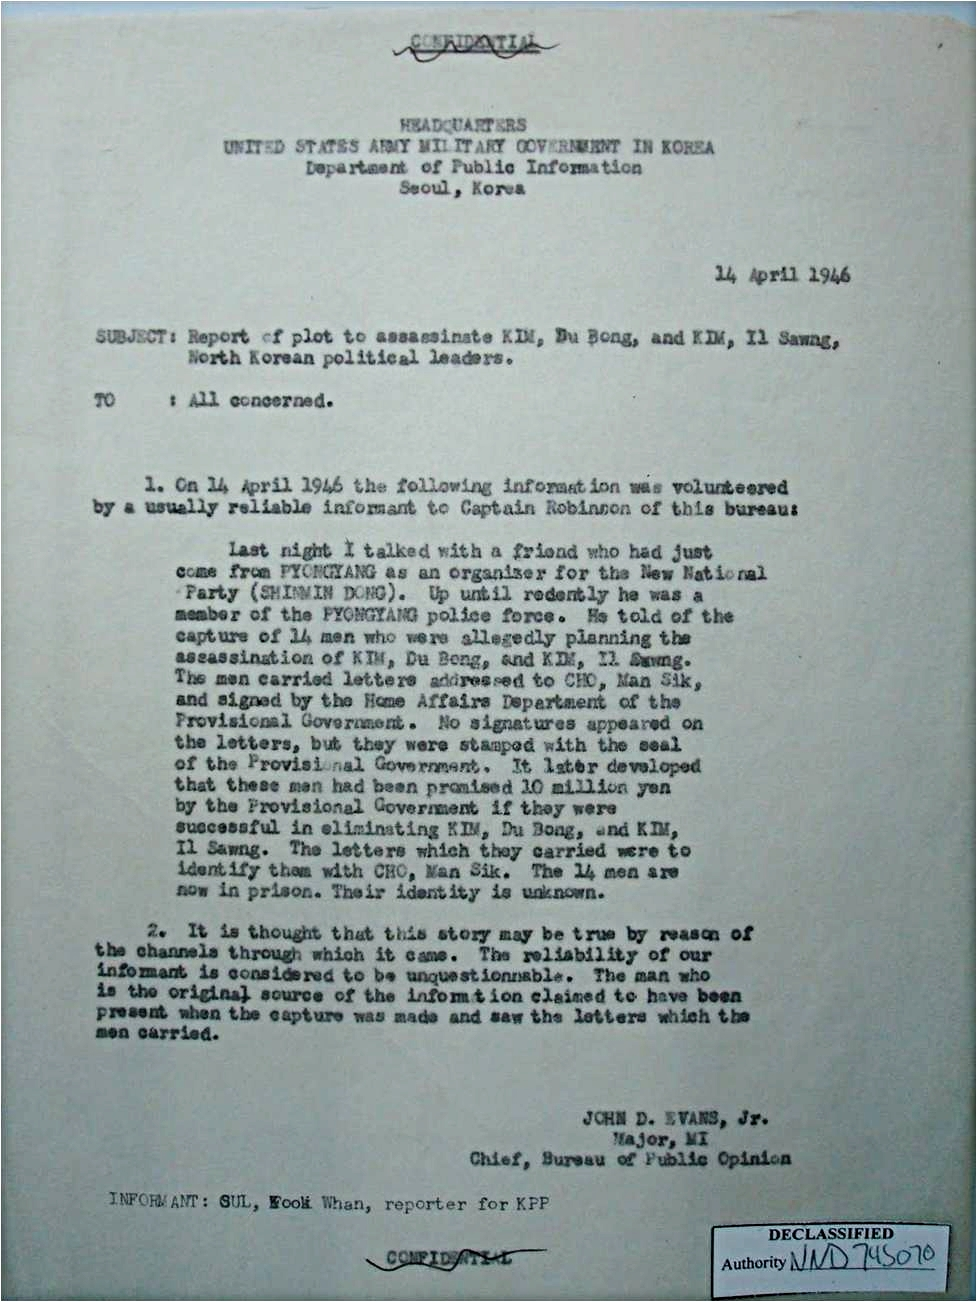 U.S. Military Government in Korea intelligence report, April 1946. (National Archives)